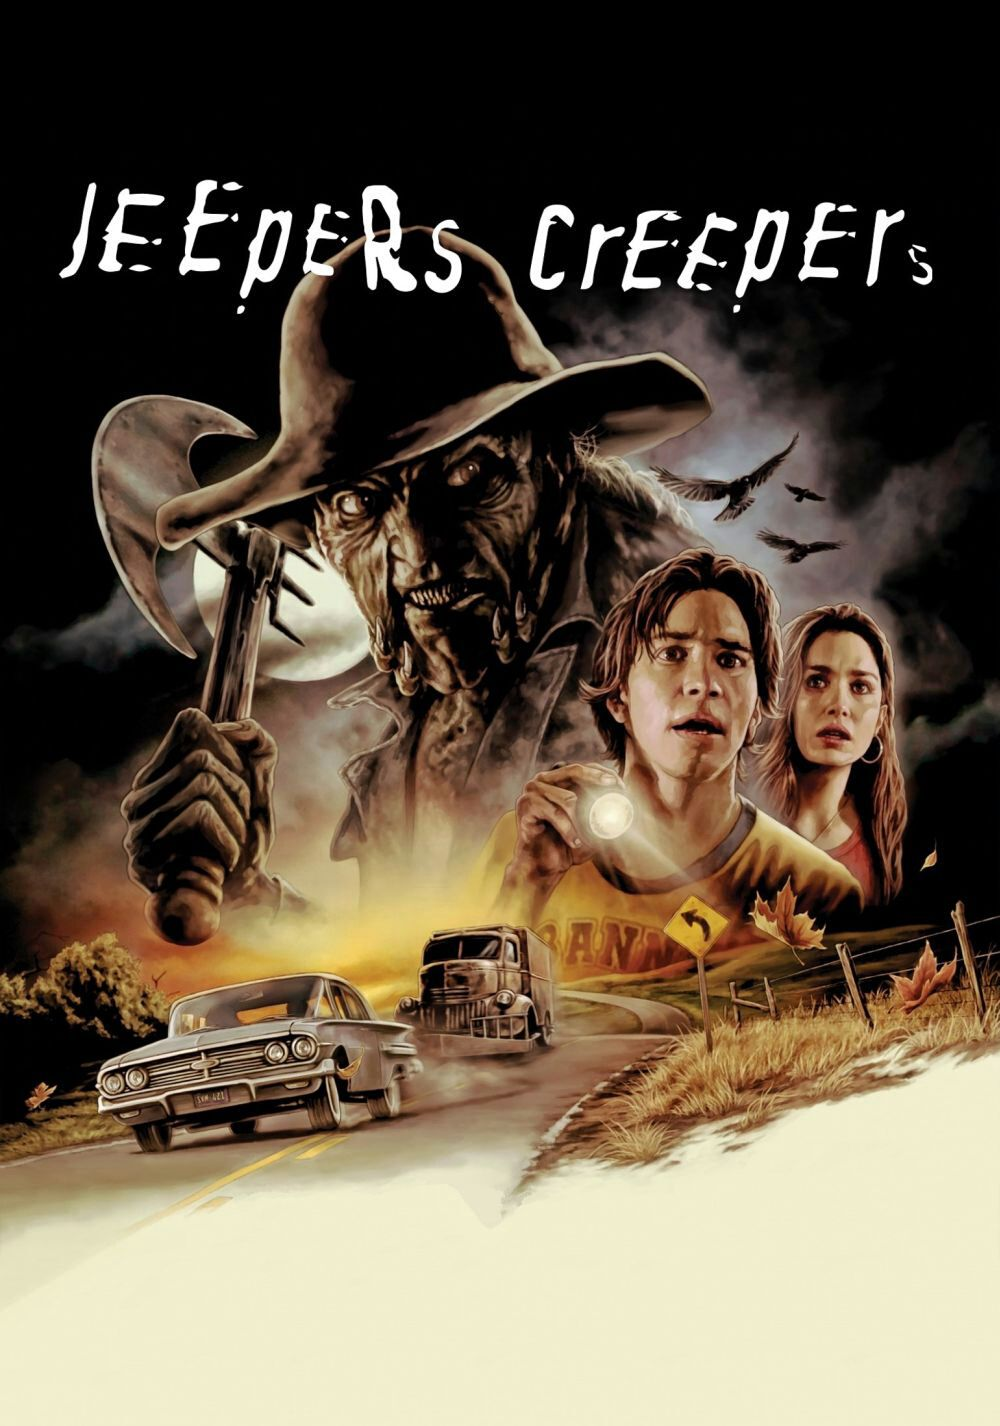 He Can Love Too Jeepers Creepers X M Creeper Reader 3 The Chase Pt 1 Wattpad